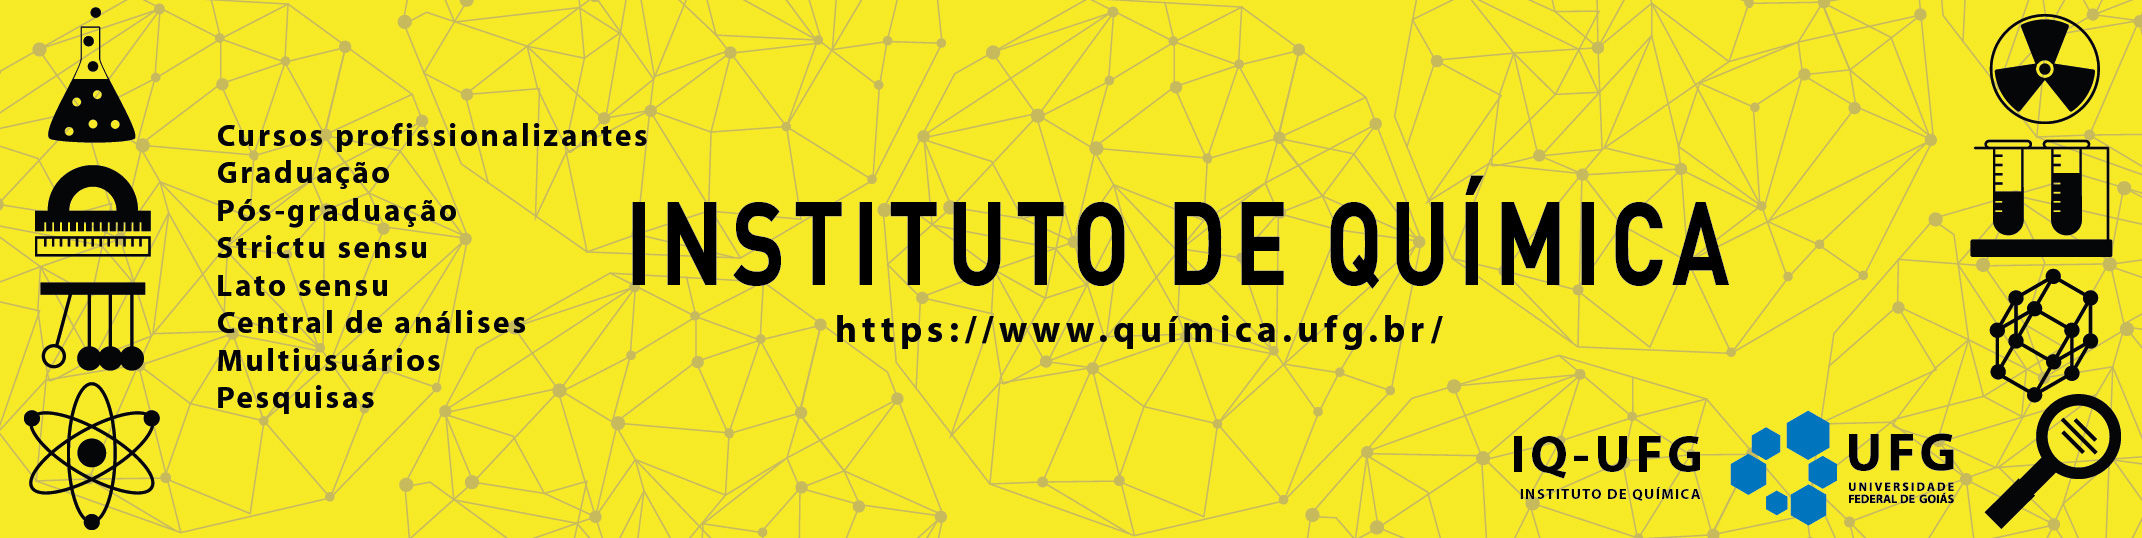 banner quimica